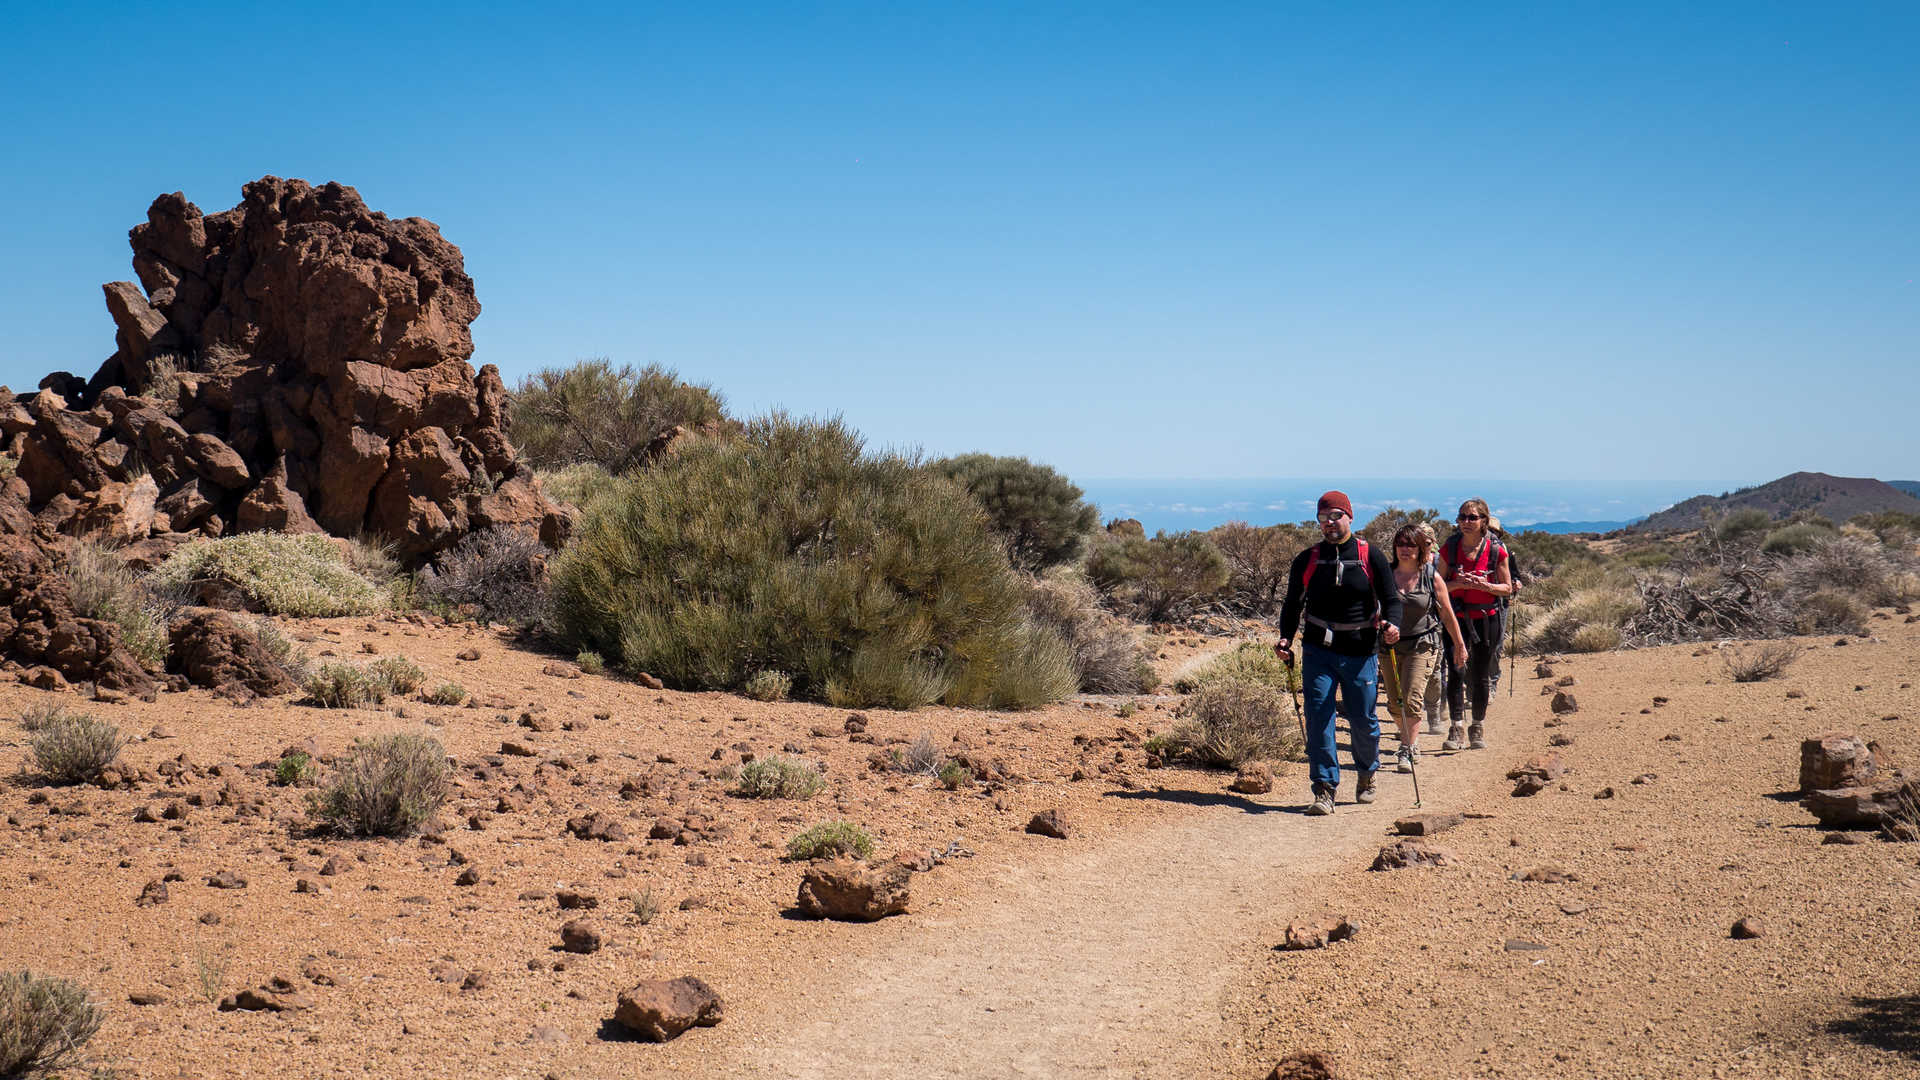 Hiking in the Teide National Park, Tenerife Island